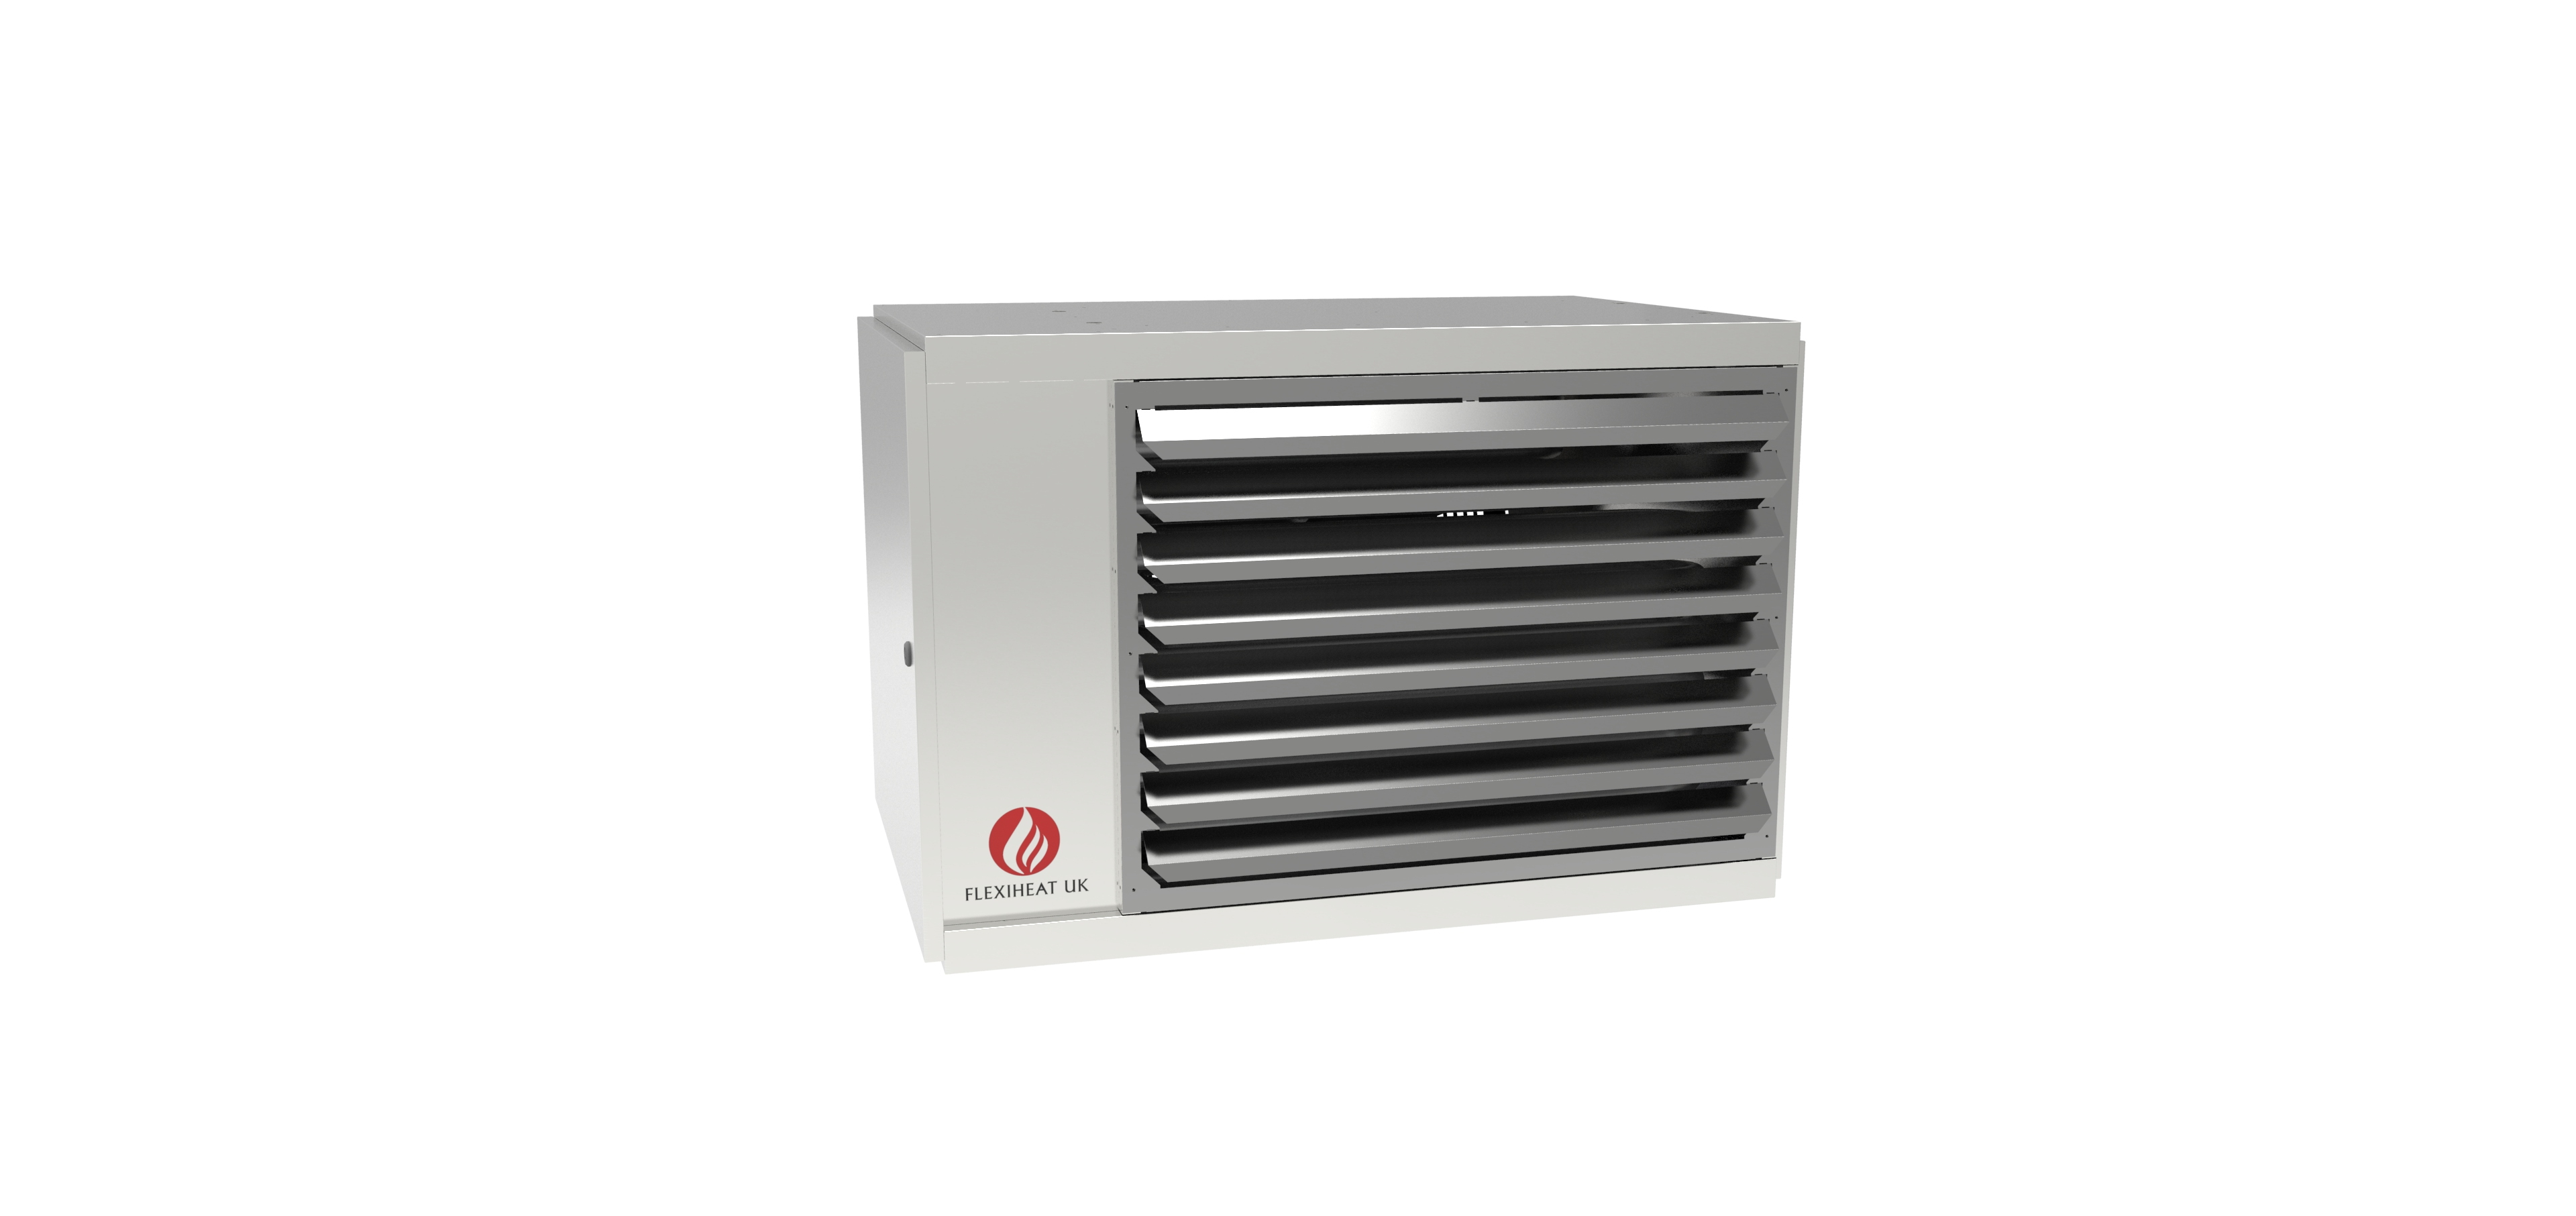 Gas Heaters Uk What S Your Options Flexiheat Uk Ltd